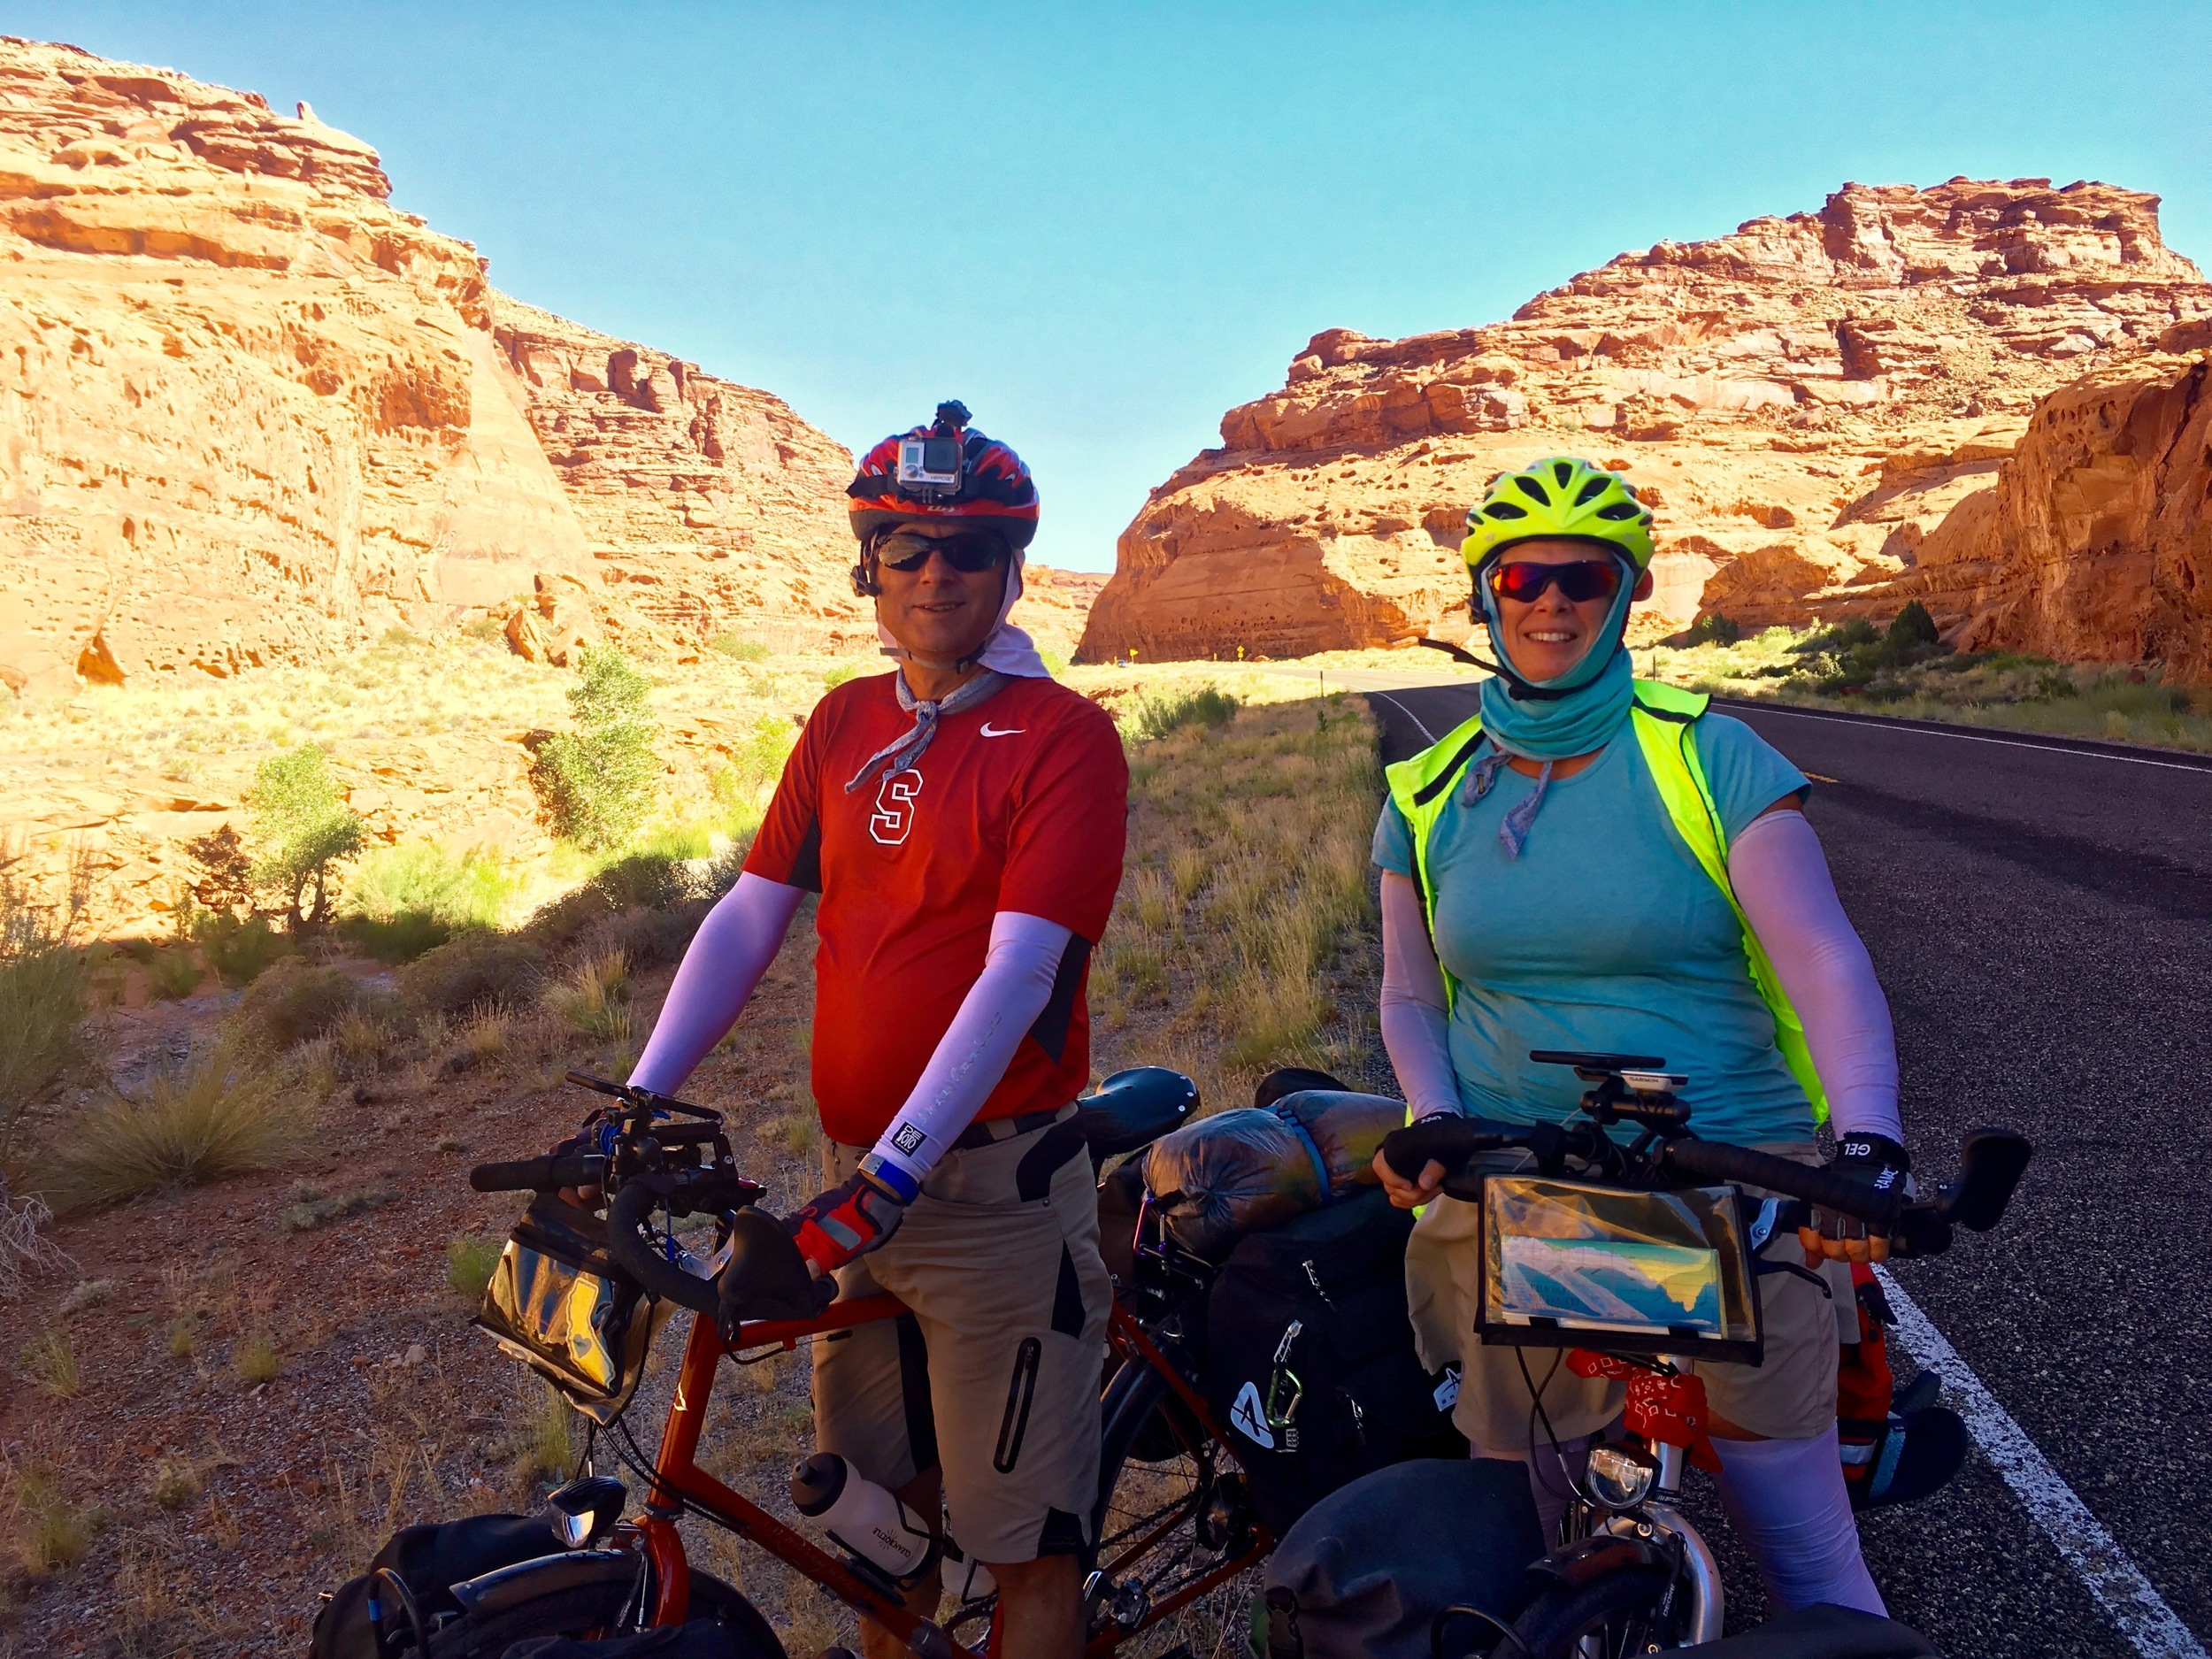 Tony and Joy on the way from Hanksville to Glen Canyon National Park.